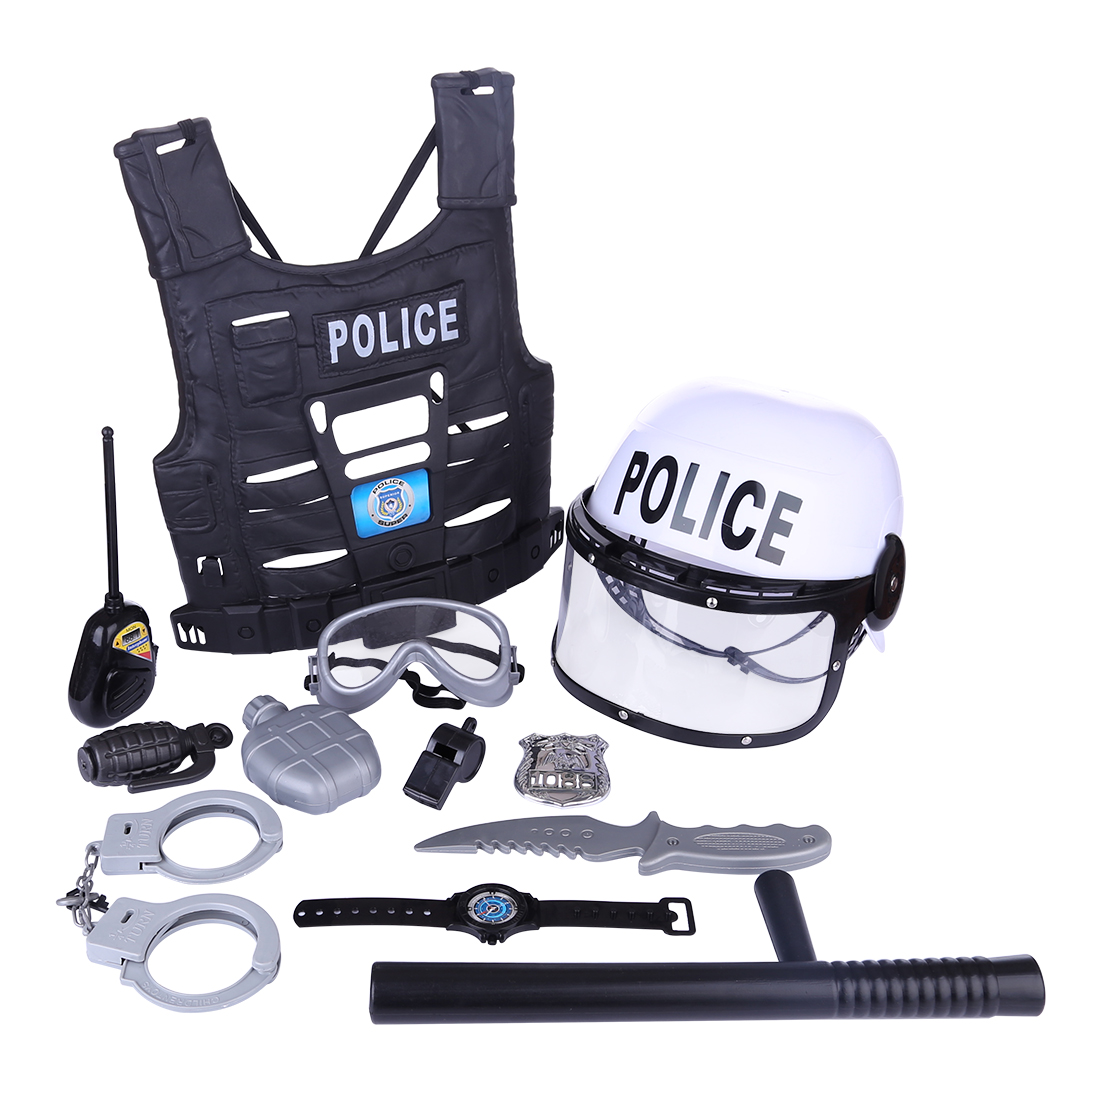 New Popular 11Pcs Children Pretend Play Toy Set Simulation Policeman Role Play Kits Occupations Toys for Boys Kids Playing SetNew Popular 11Pcs Children Pretend Play Toy Set Simulation Policeman Role Play Kits Occupations Toys for Boys Kids Playing Set